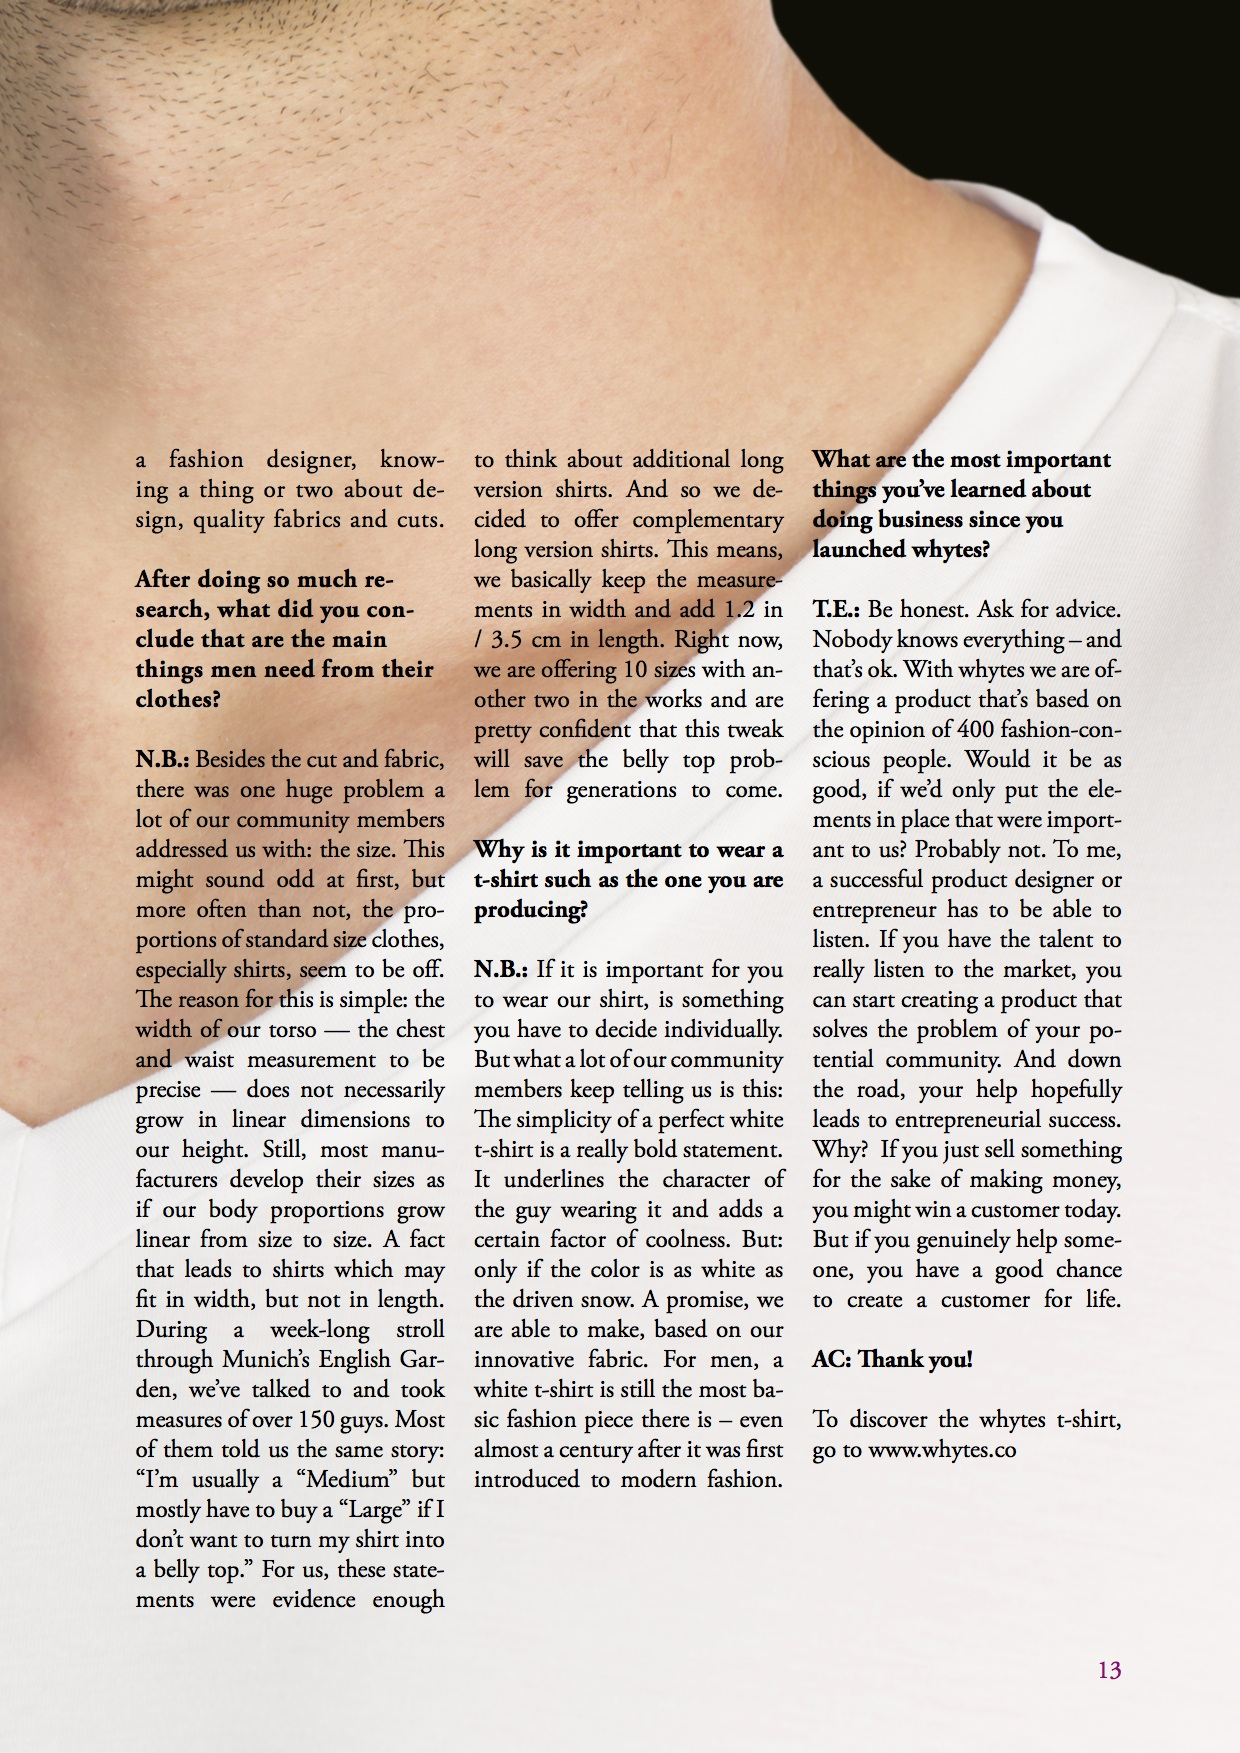 whytes_perfect_white_t-shirt_inCompany_interview_3.jpg